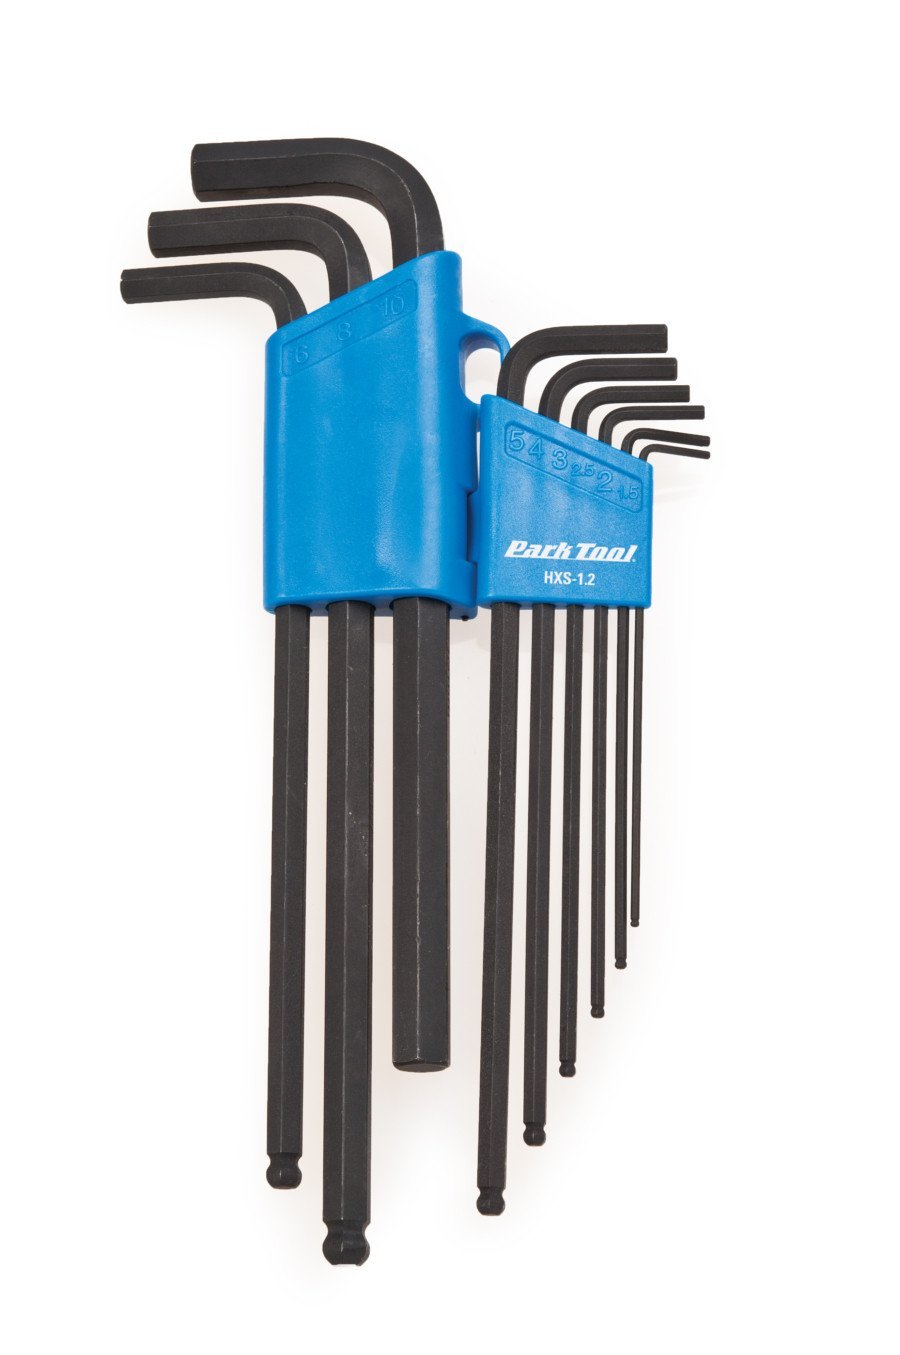 Park Tool Accessories > Locks & Tools Park Tool HXS1 Professional Hex Wrench Set